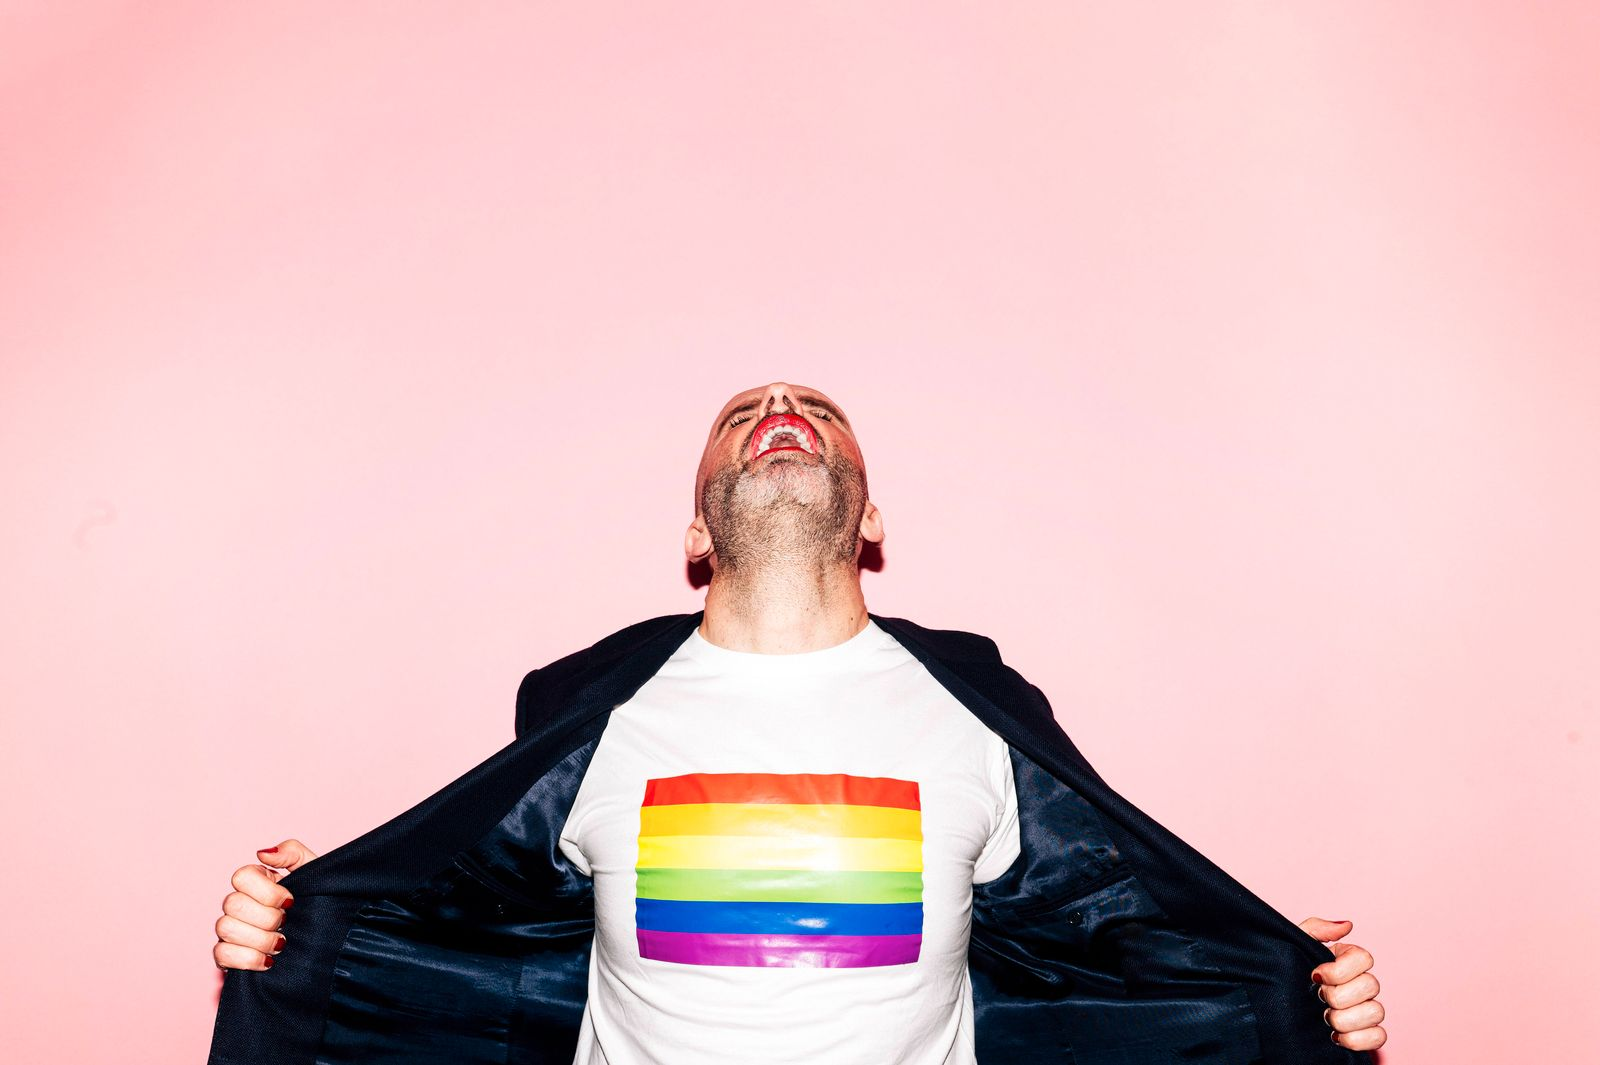 Confident bearded man with red lips screaming and demonstrating LGBT flag on white t shirt against pink background Copy